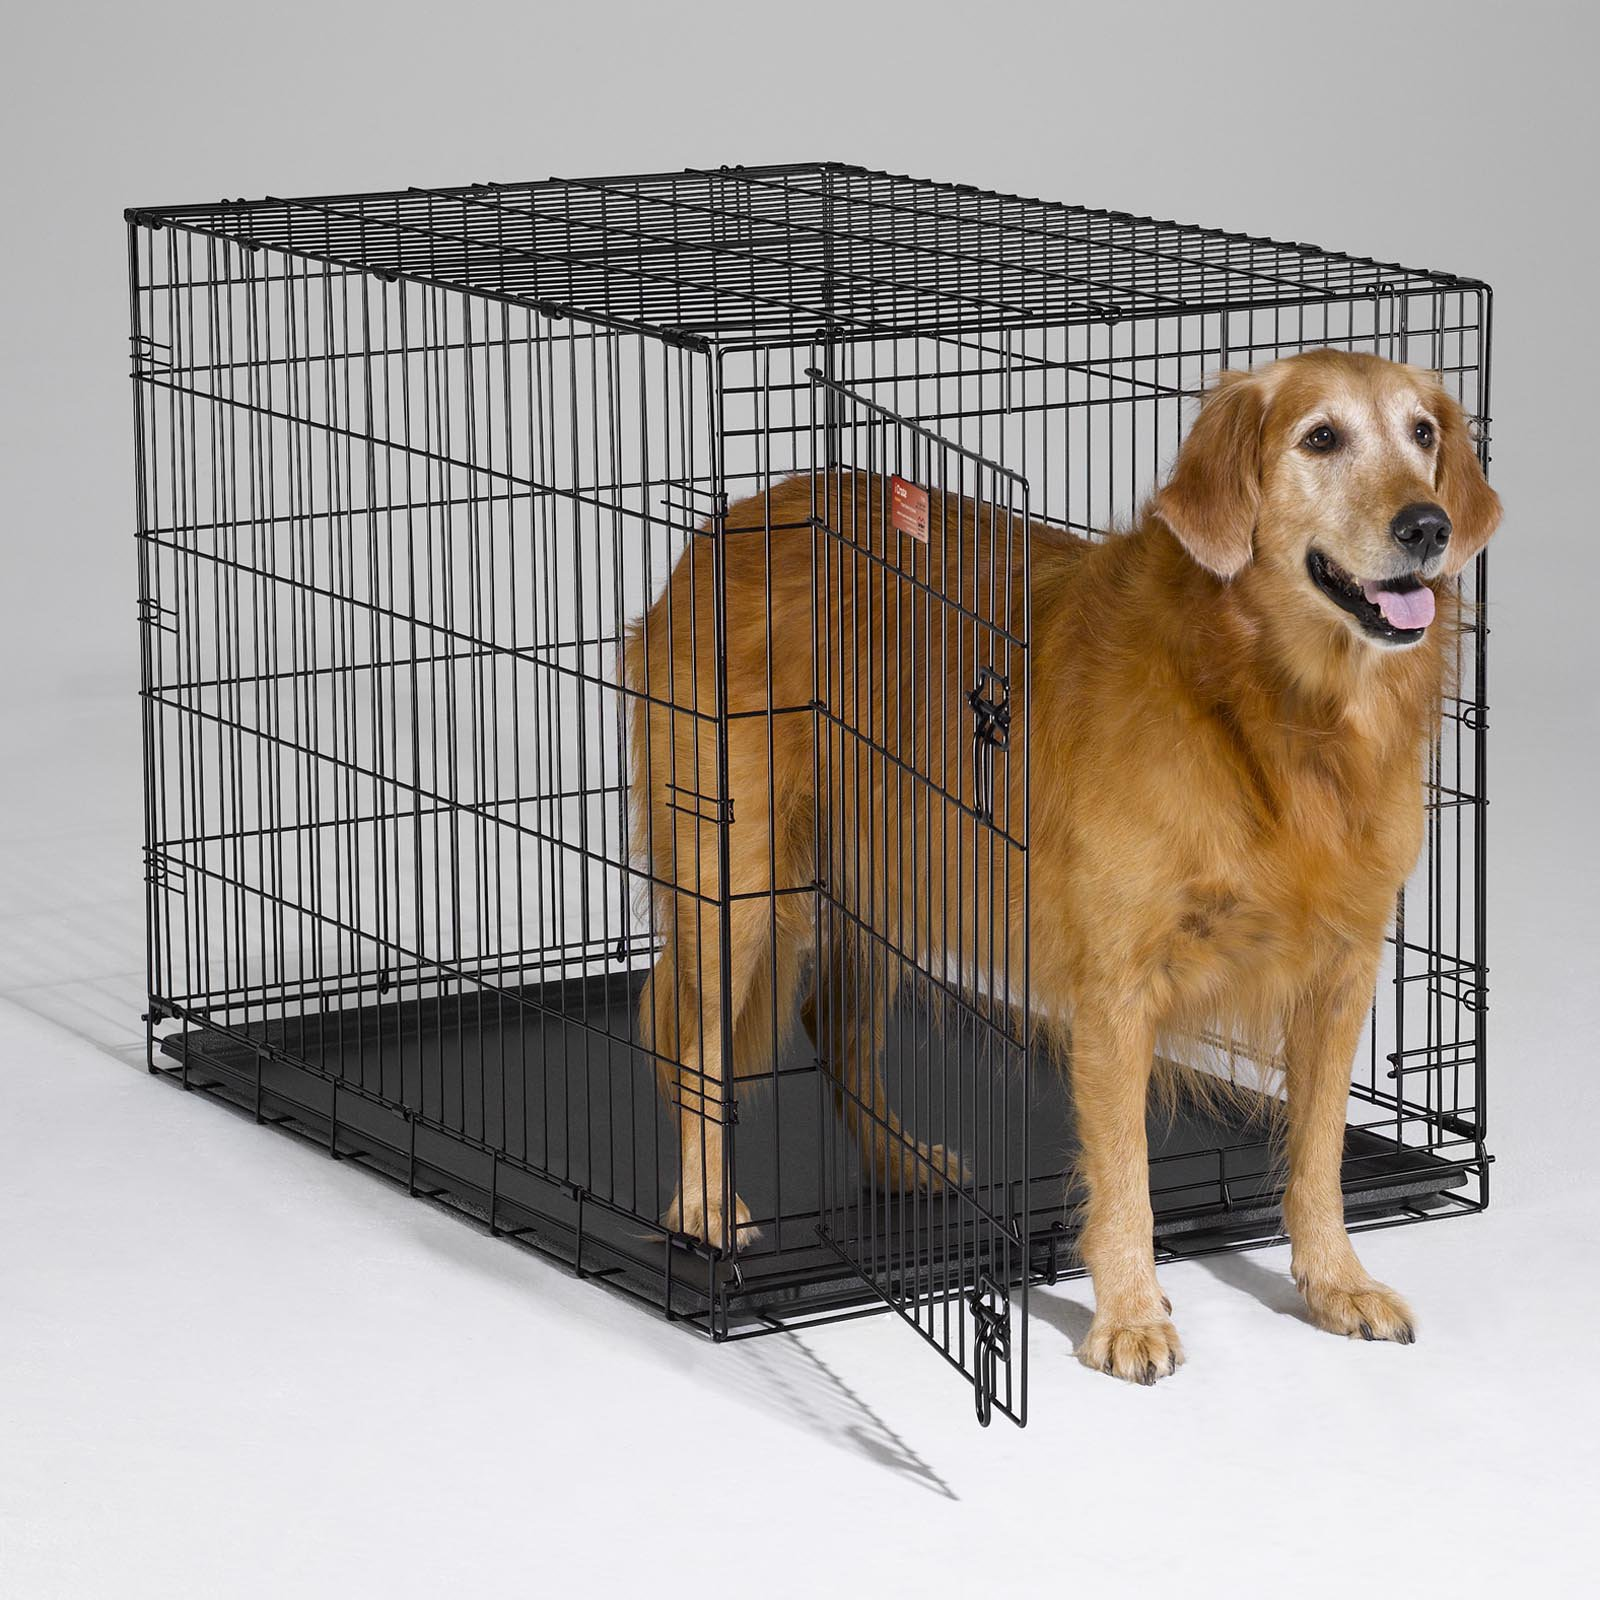 MidWest iCrate Folding Single Door Dog Crate & MidWest iCrate Folding Single Door Dog Crate - Walmart.com